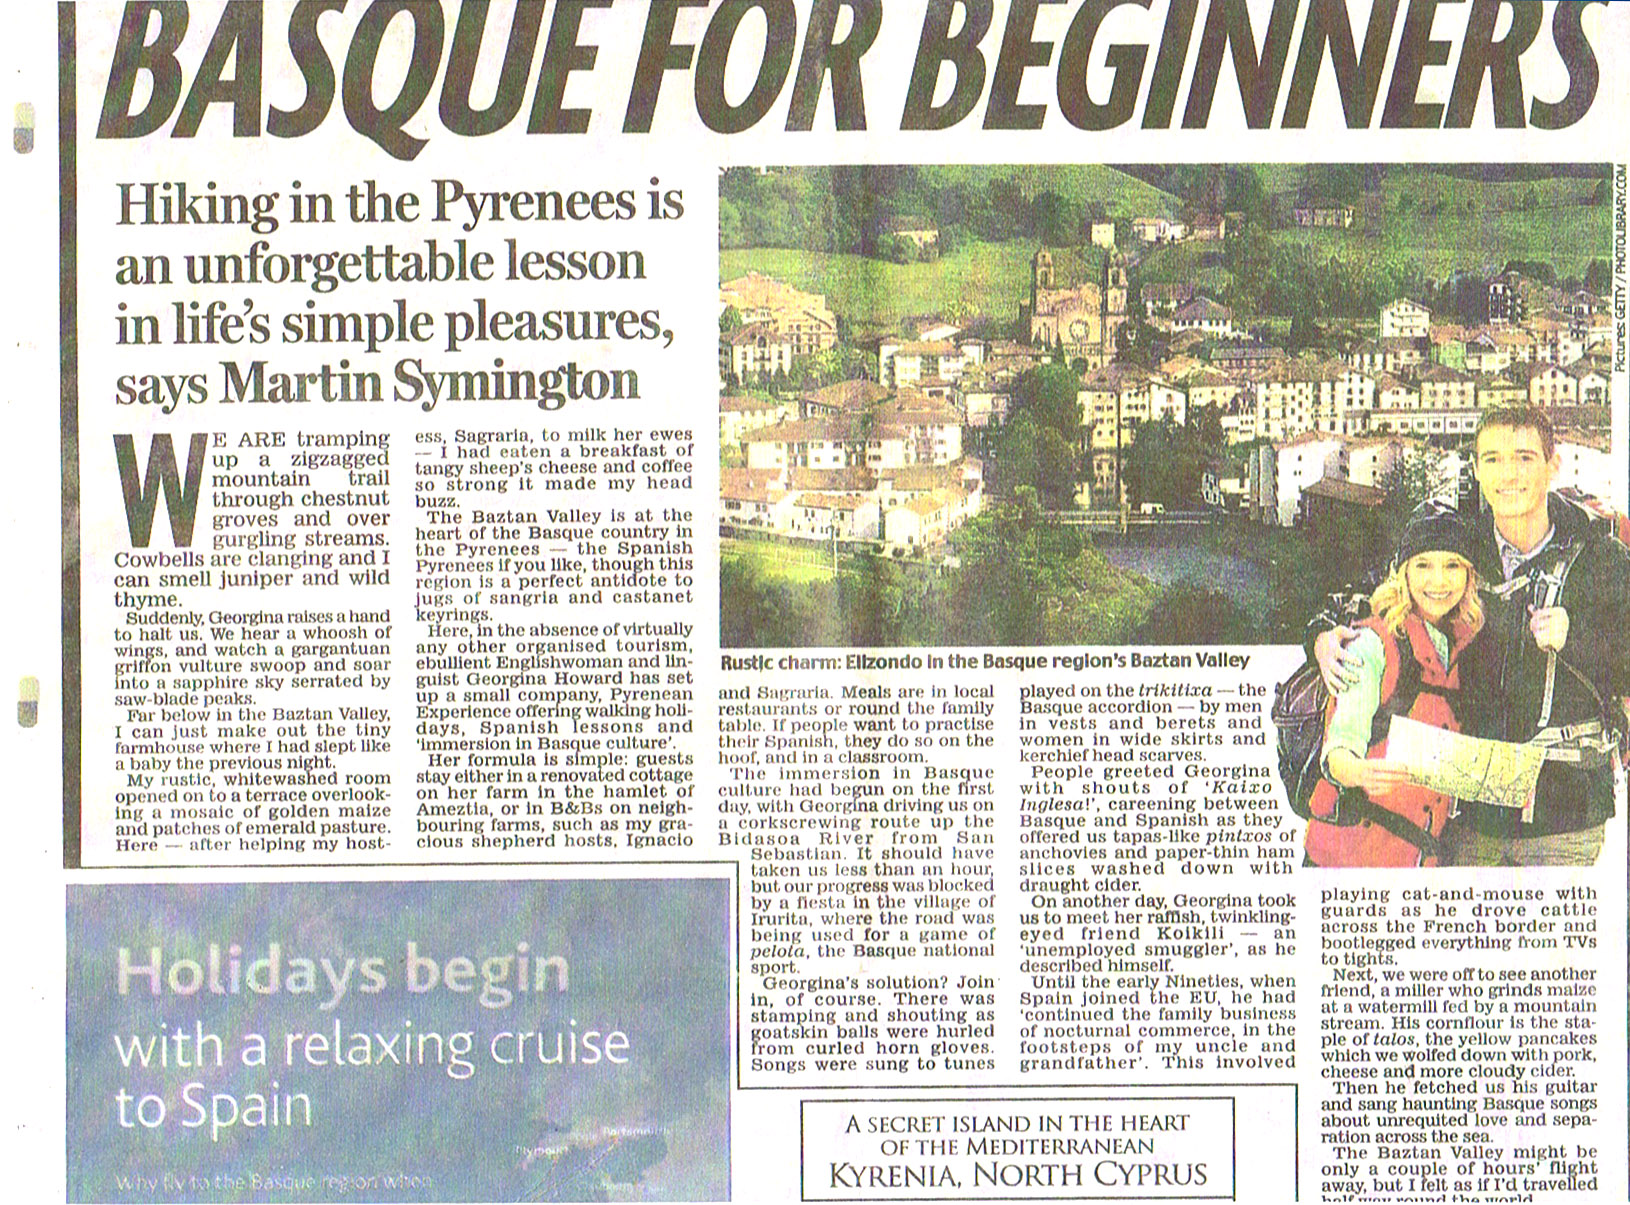 Daily Mail article about the Pyrenean Experience